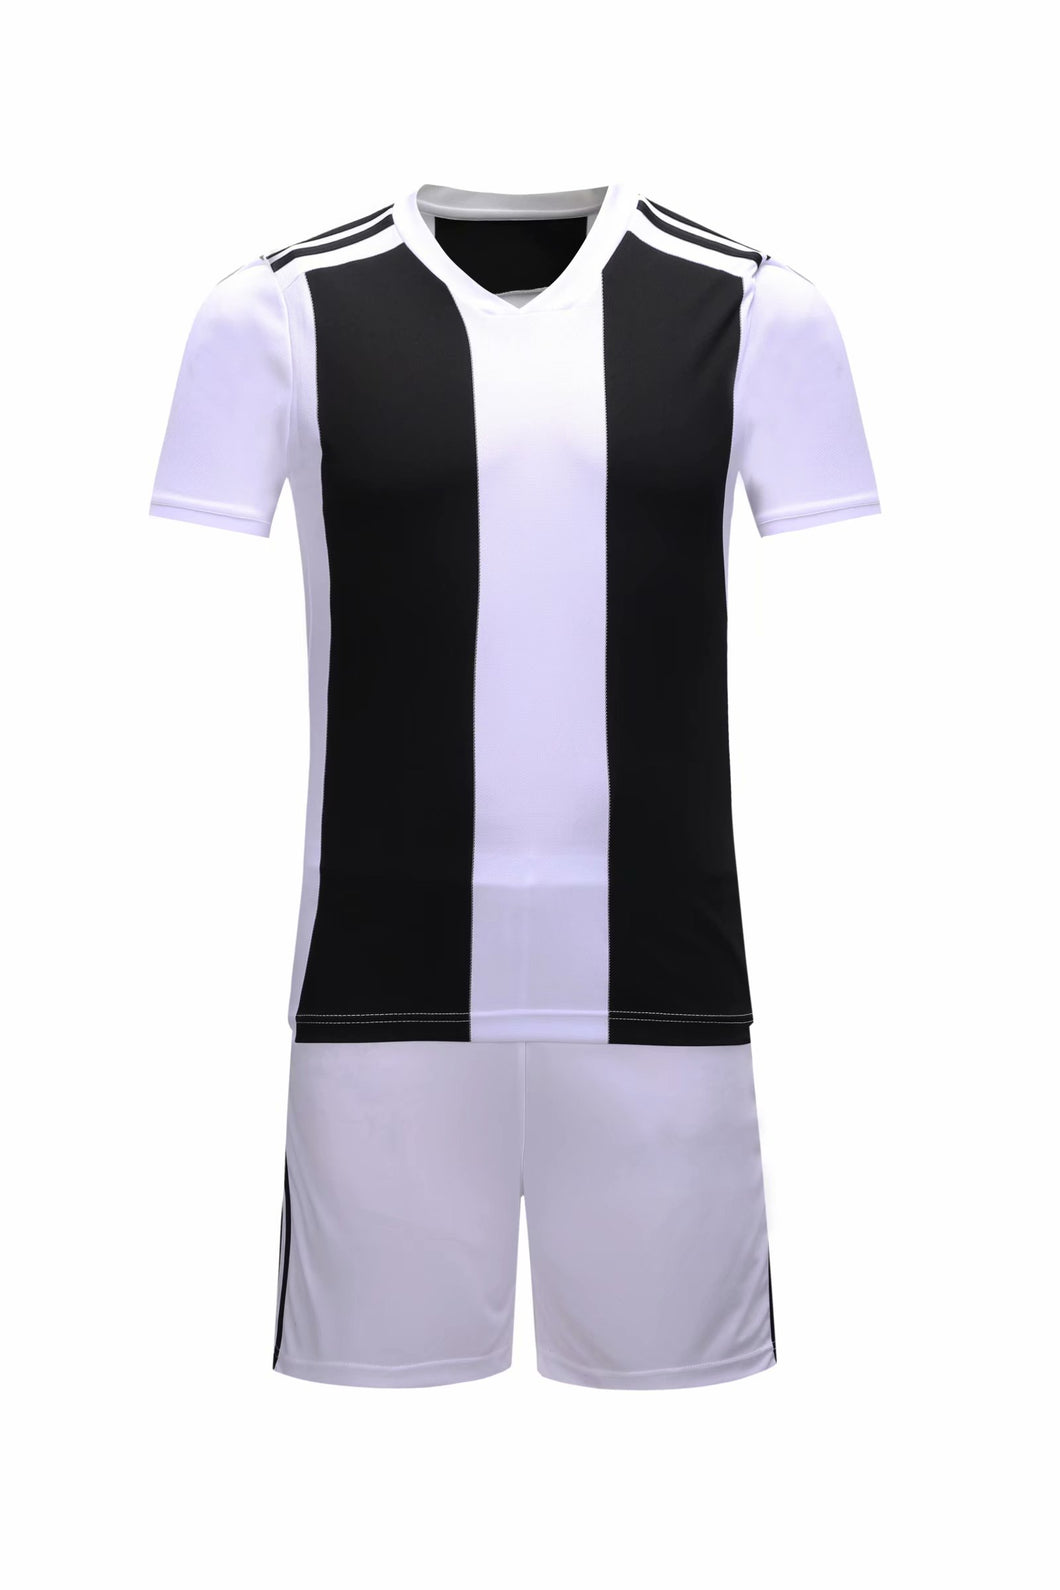 Full Football Kit - White and black stripes top and White shorts.